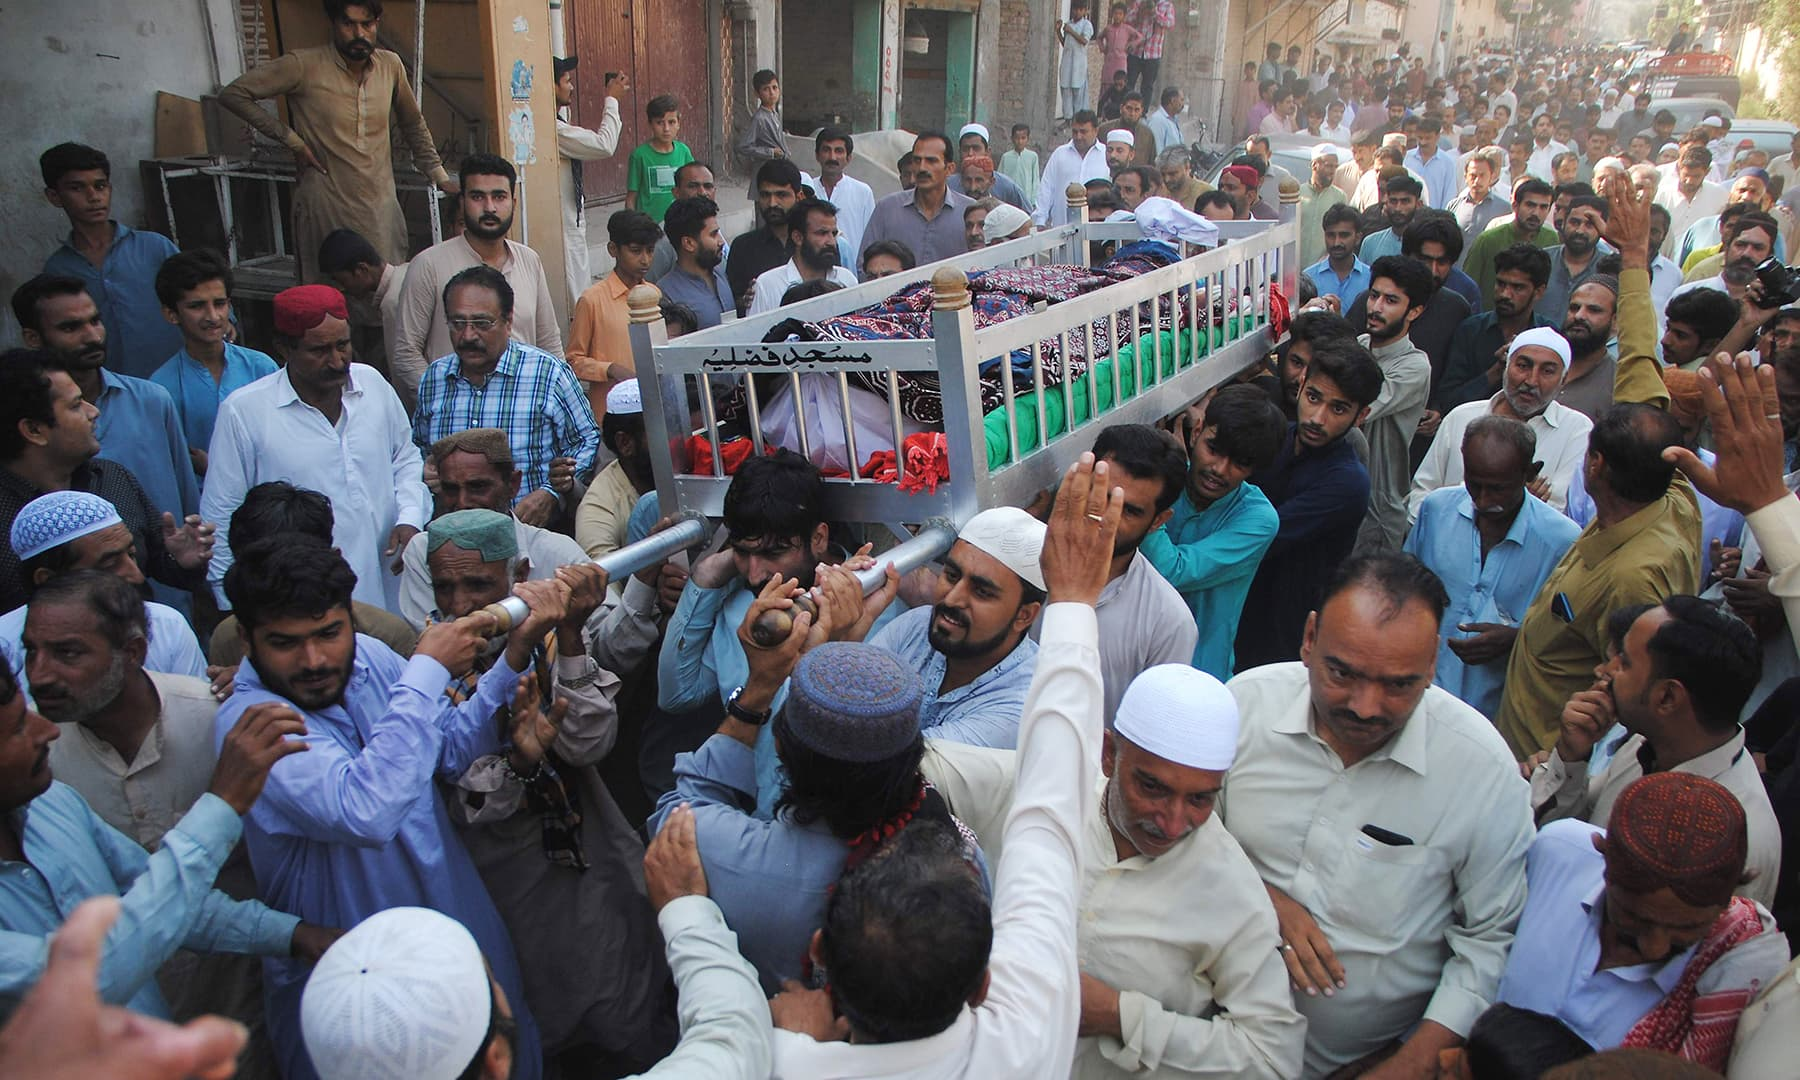 People attend the funeral of a train fire victim in Mirpurkhas on Friday, November 1. — AP